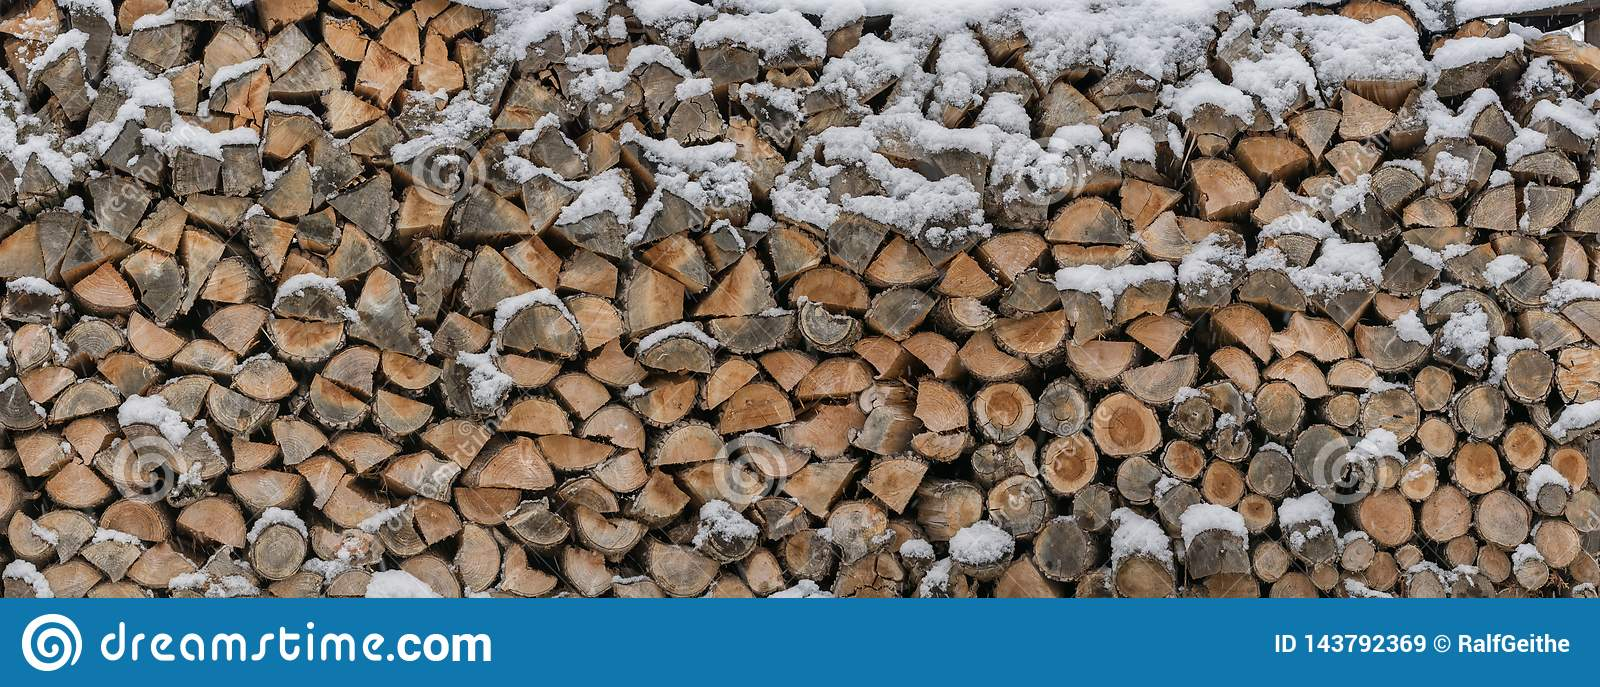 Firewood is stored in the snow as a wooden texture